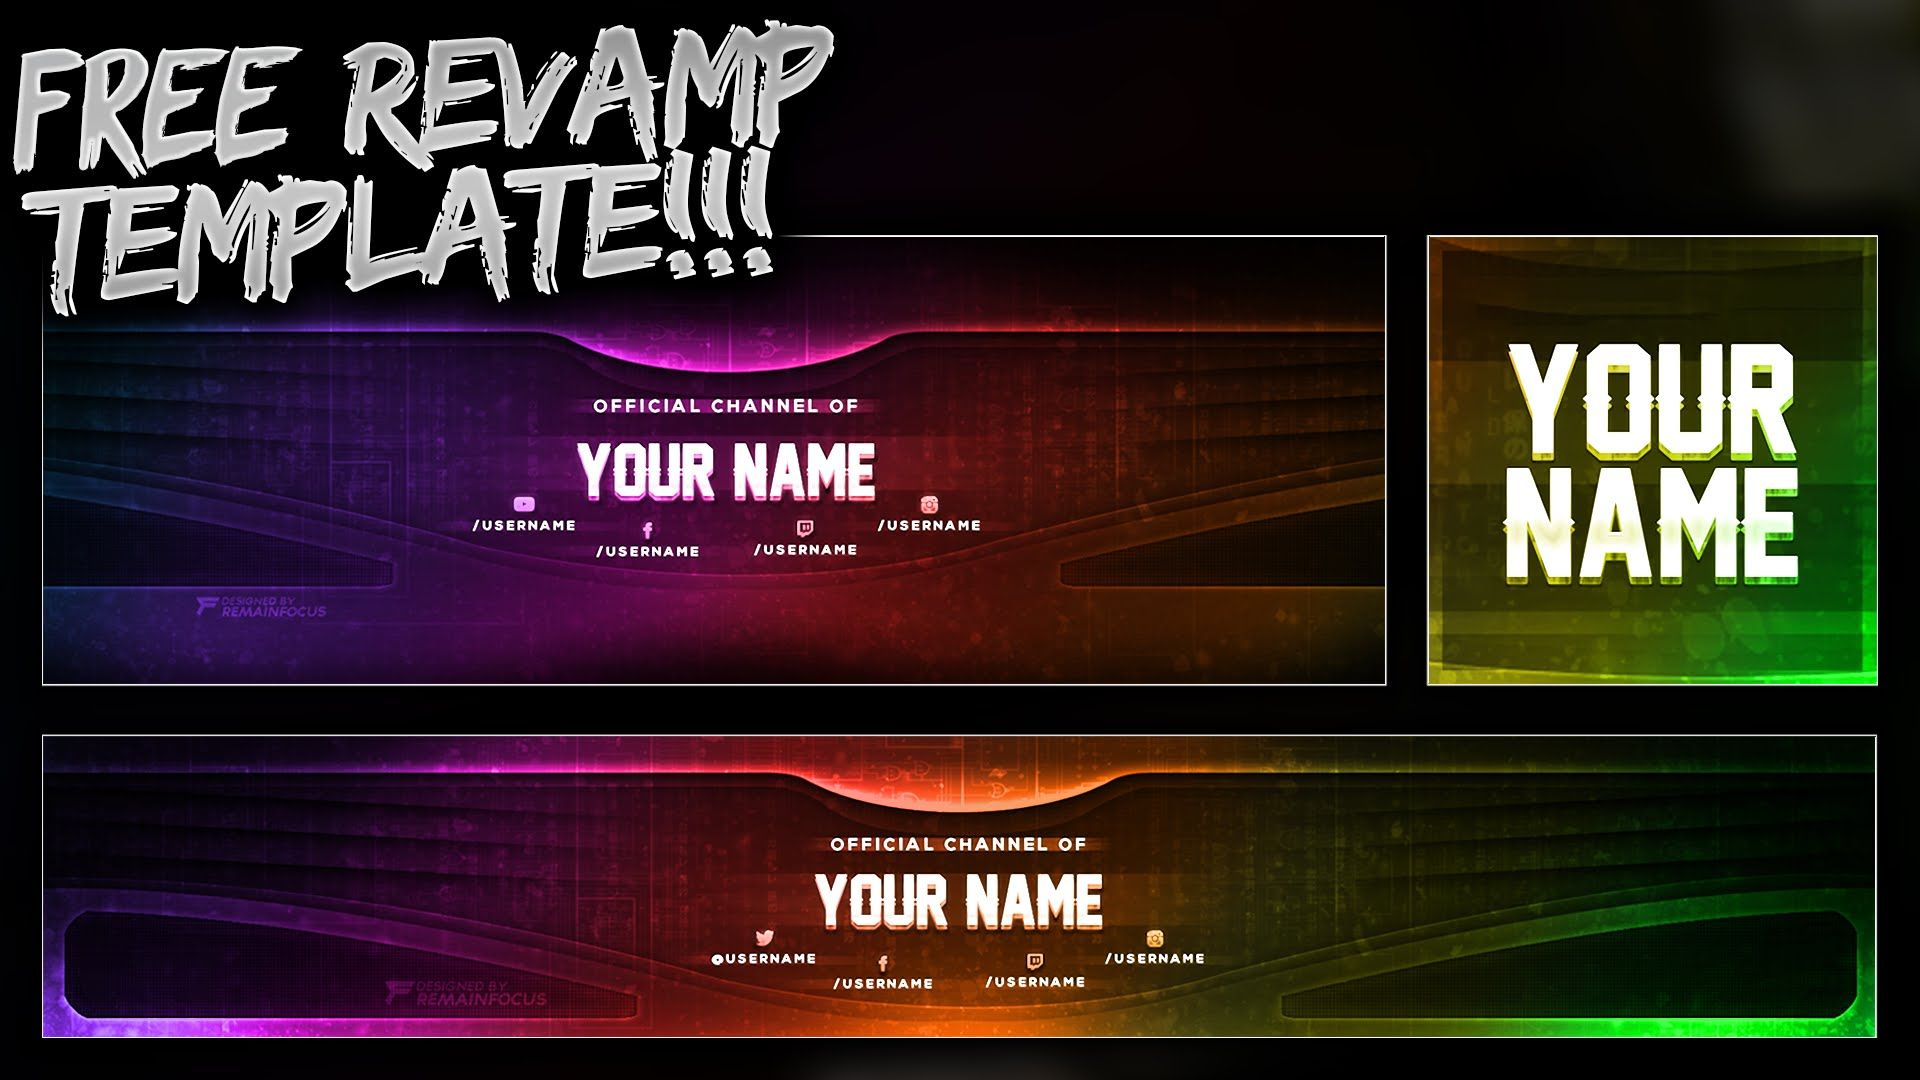 Free Youtube Banner Twitter Header Template Psd Free Download New